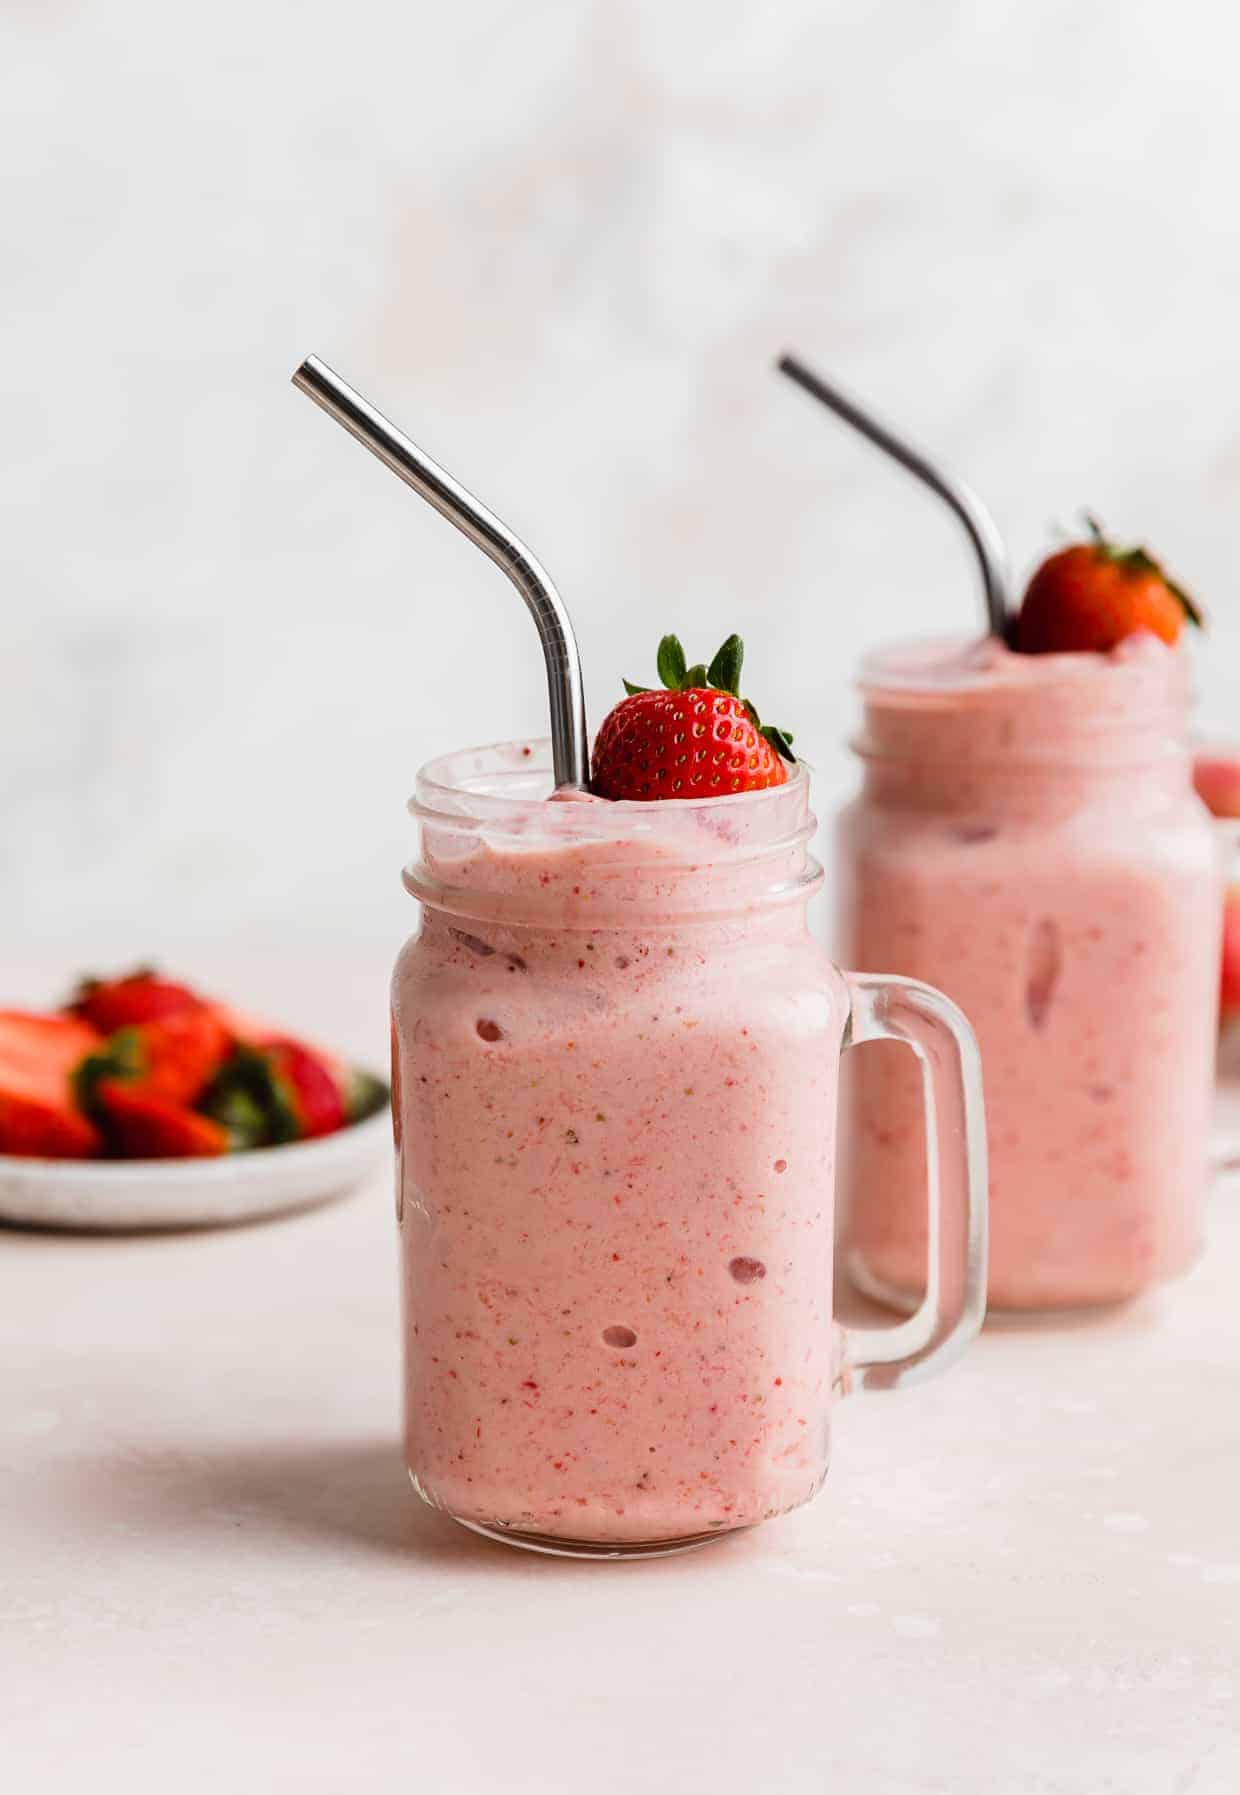 Two mason jar glasses full of Strawberry Pineapple Smoothie with a fresh strawberry resting on the top of the smoothie.